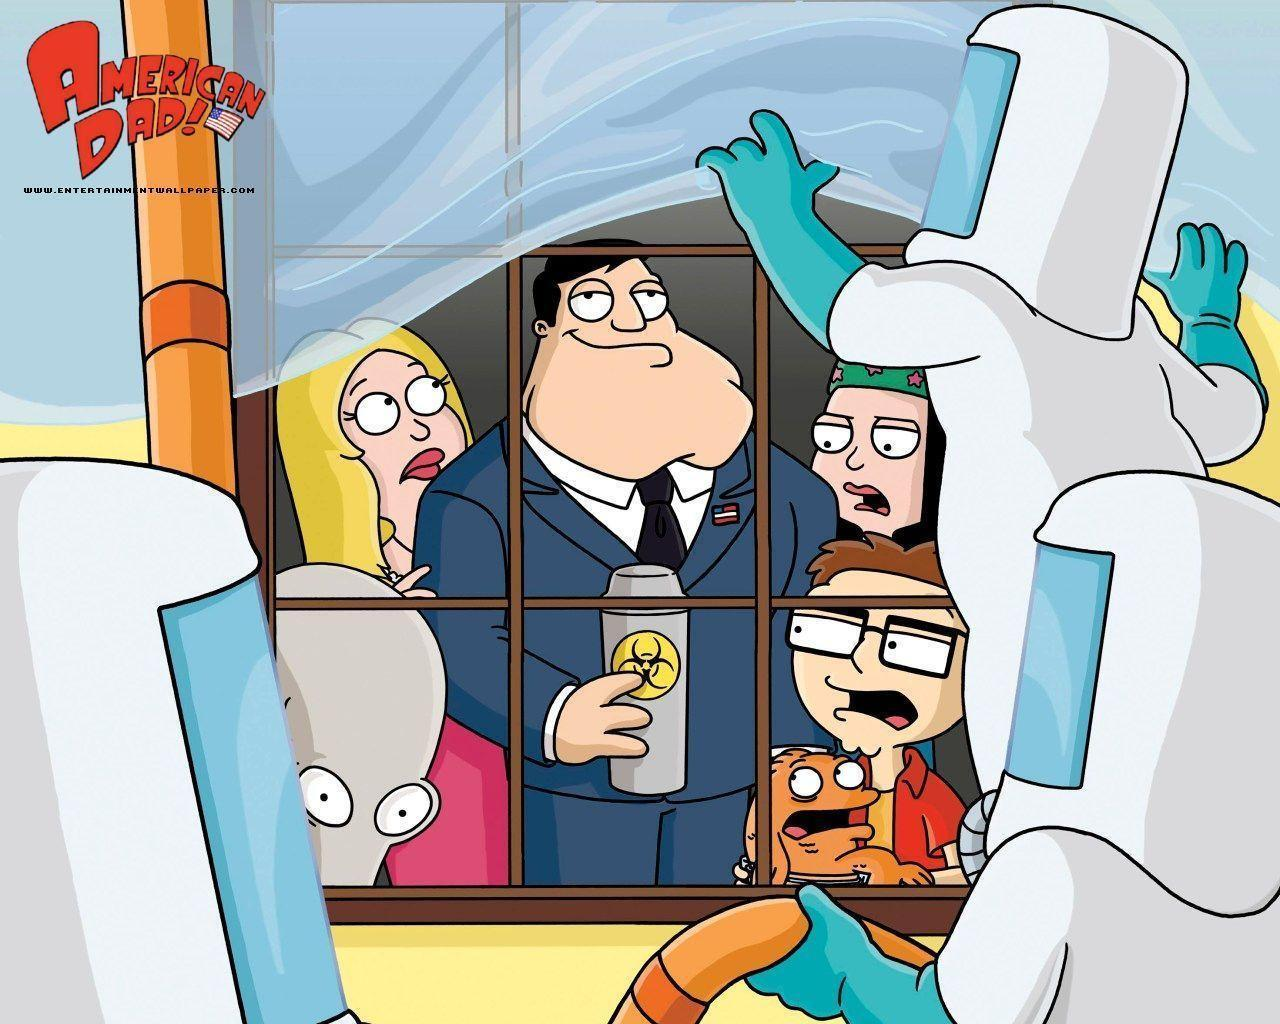 American Dad Wallpaper 39935 in Movies - Telusers.